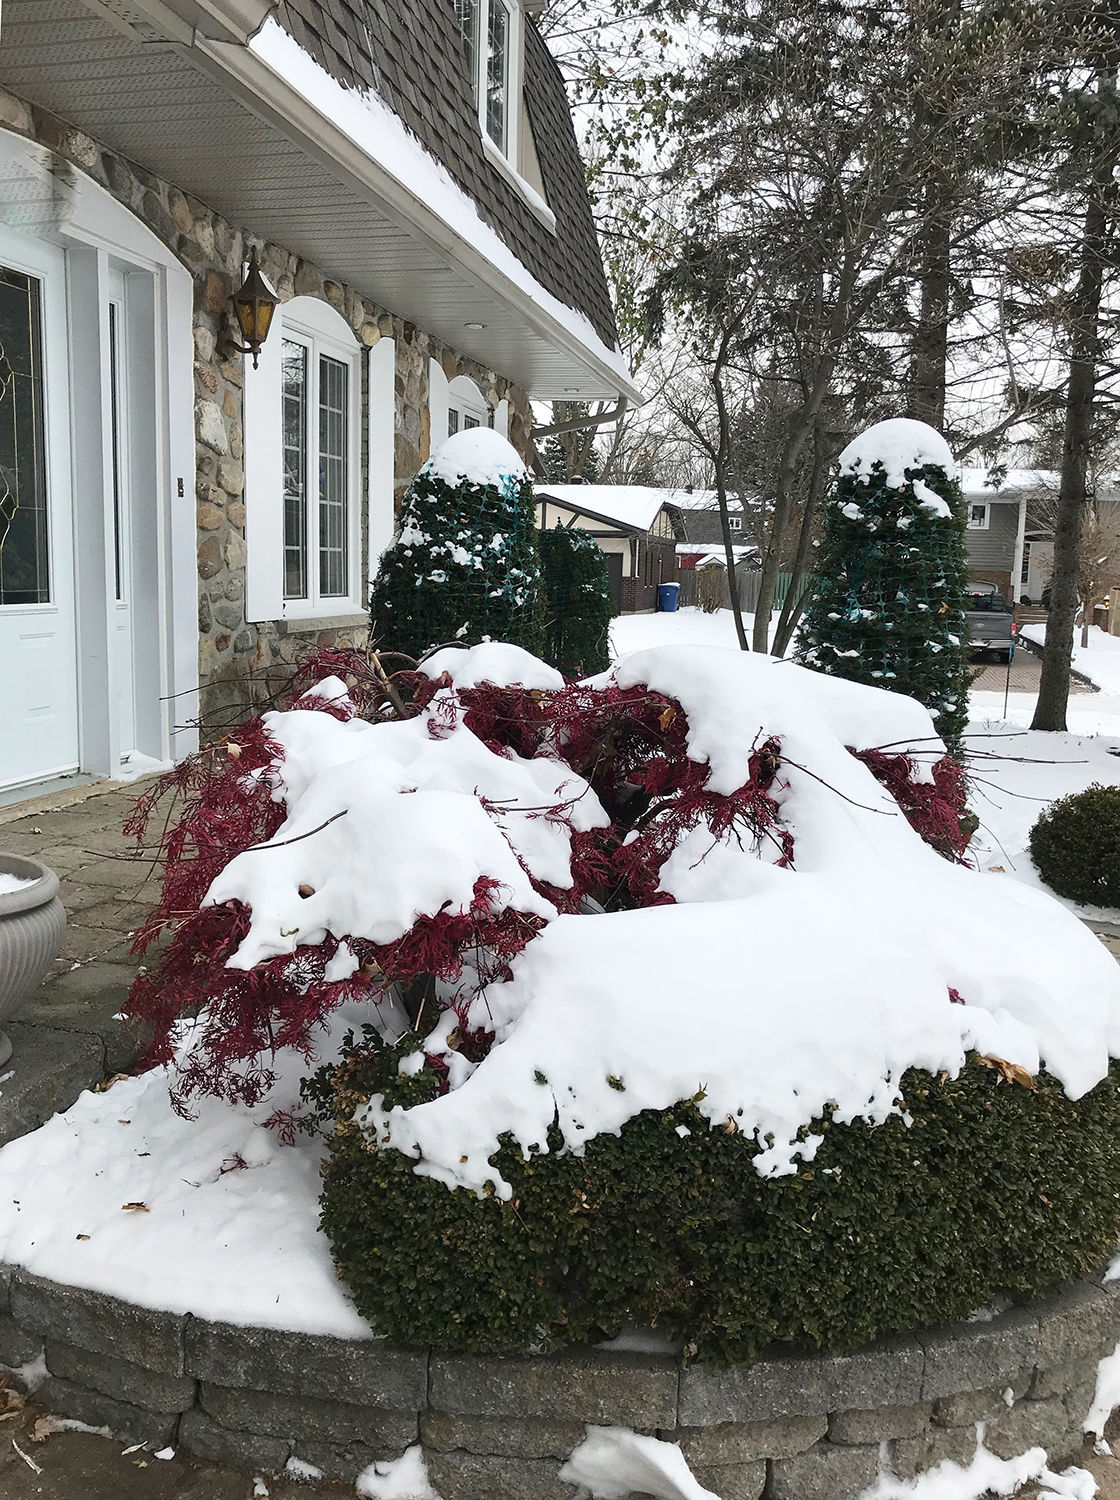 Elaine Sanders: It's not too late to protect your plants for winter